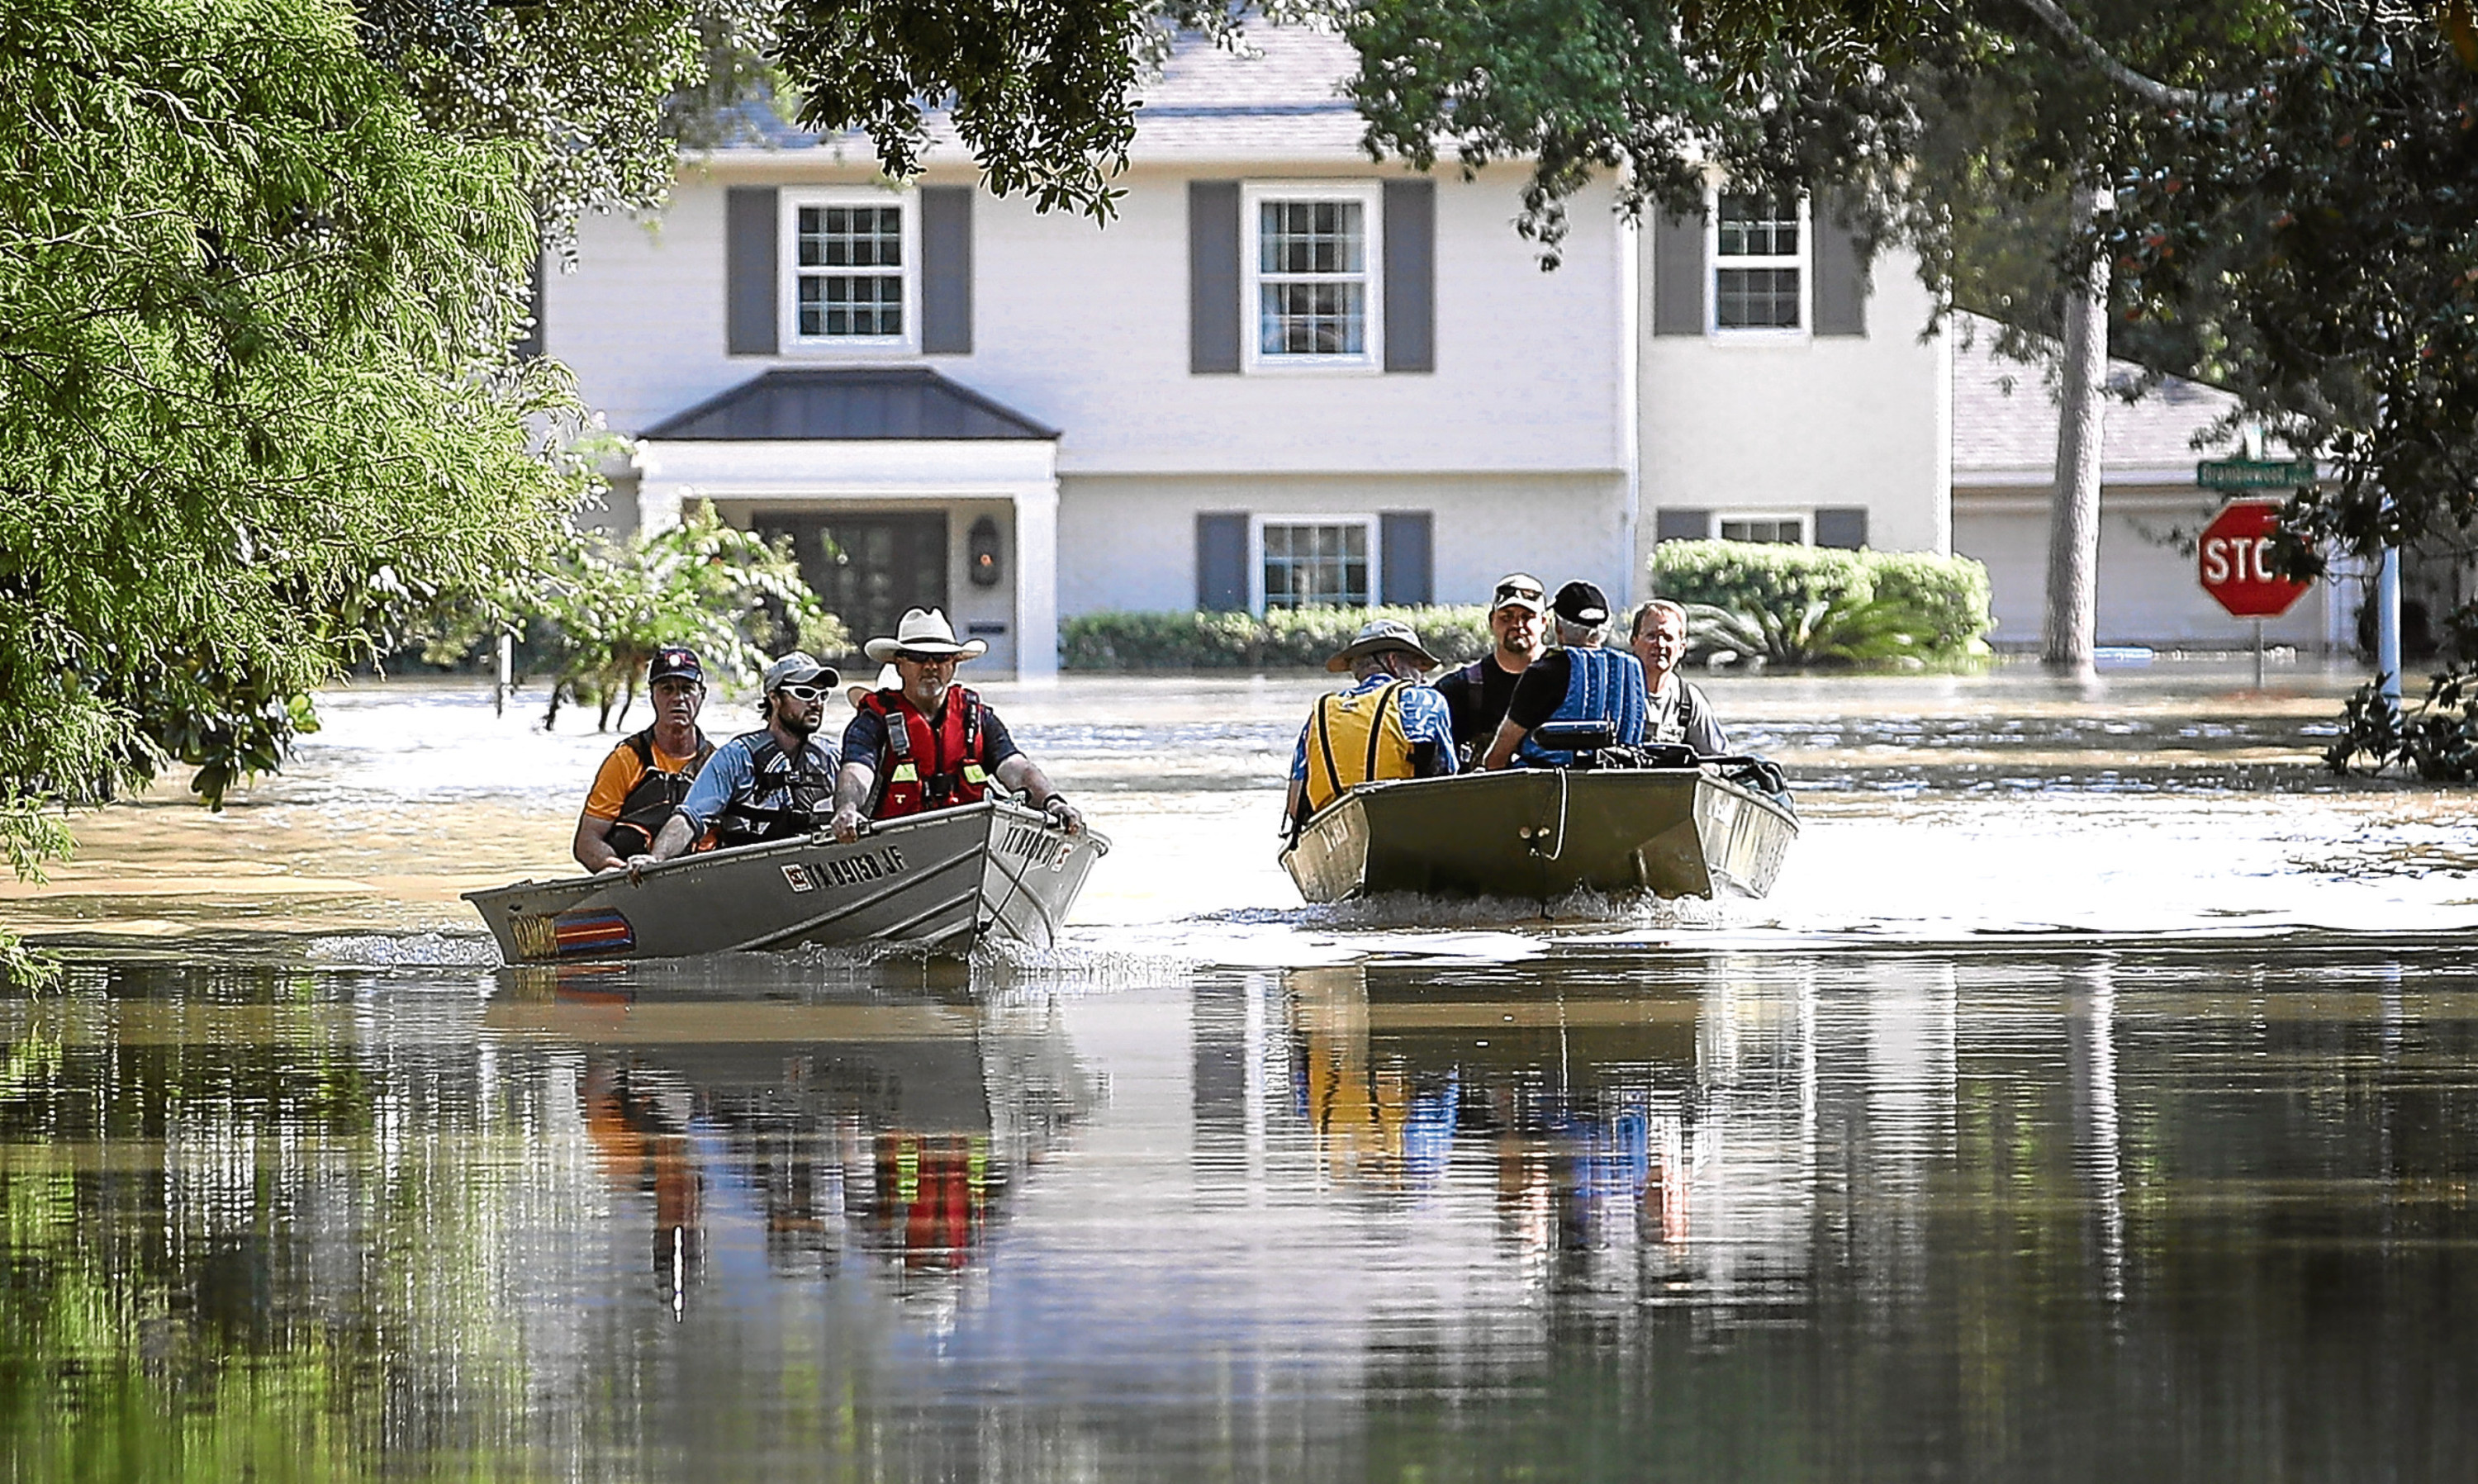 Residents near the Barker Reservoir, Houston, Texas, return to their flooded homes to collect belongings.